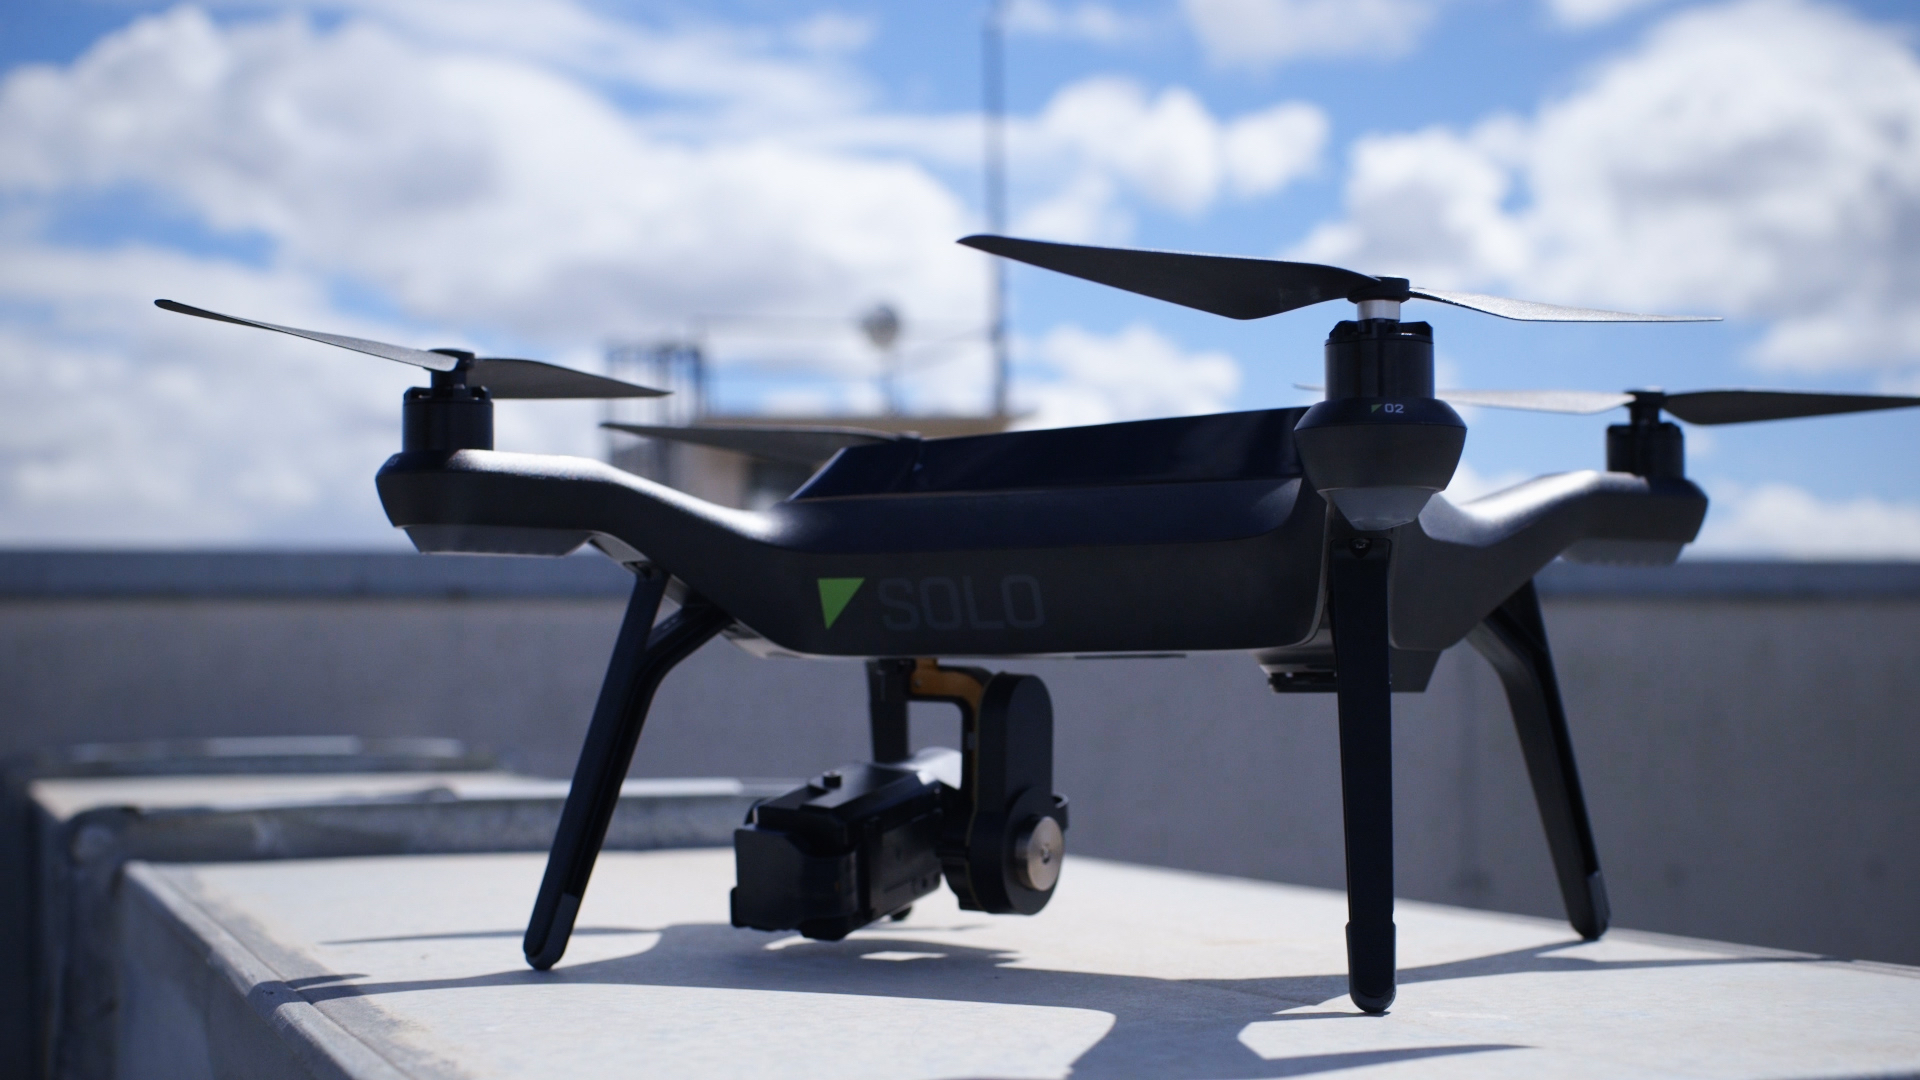 The 3D Robotics Solo may be the smartest drone ever | The Verge